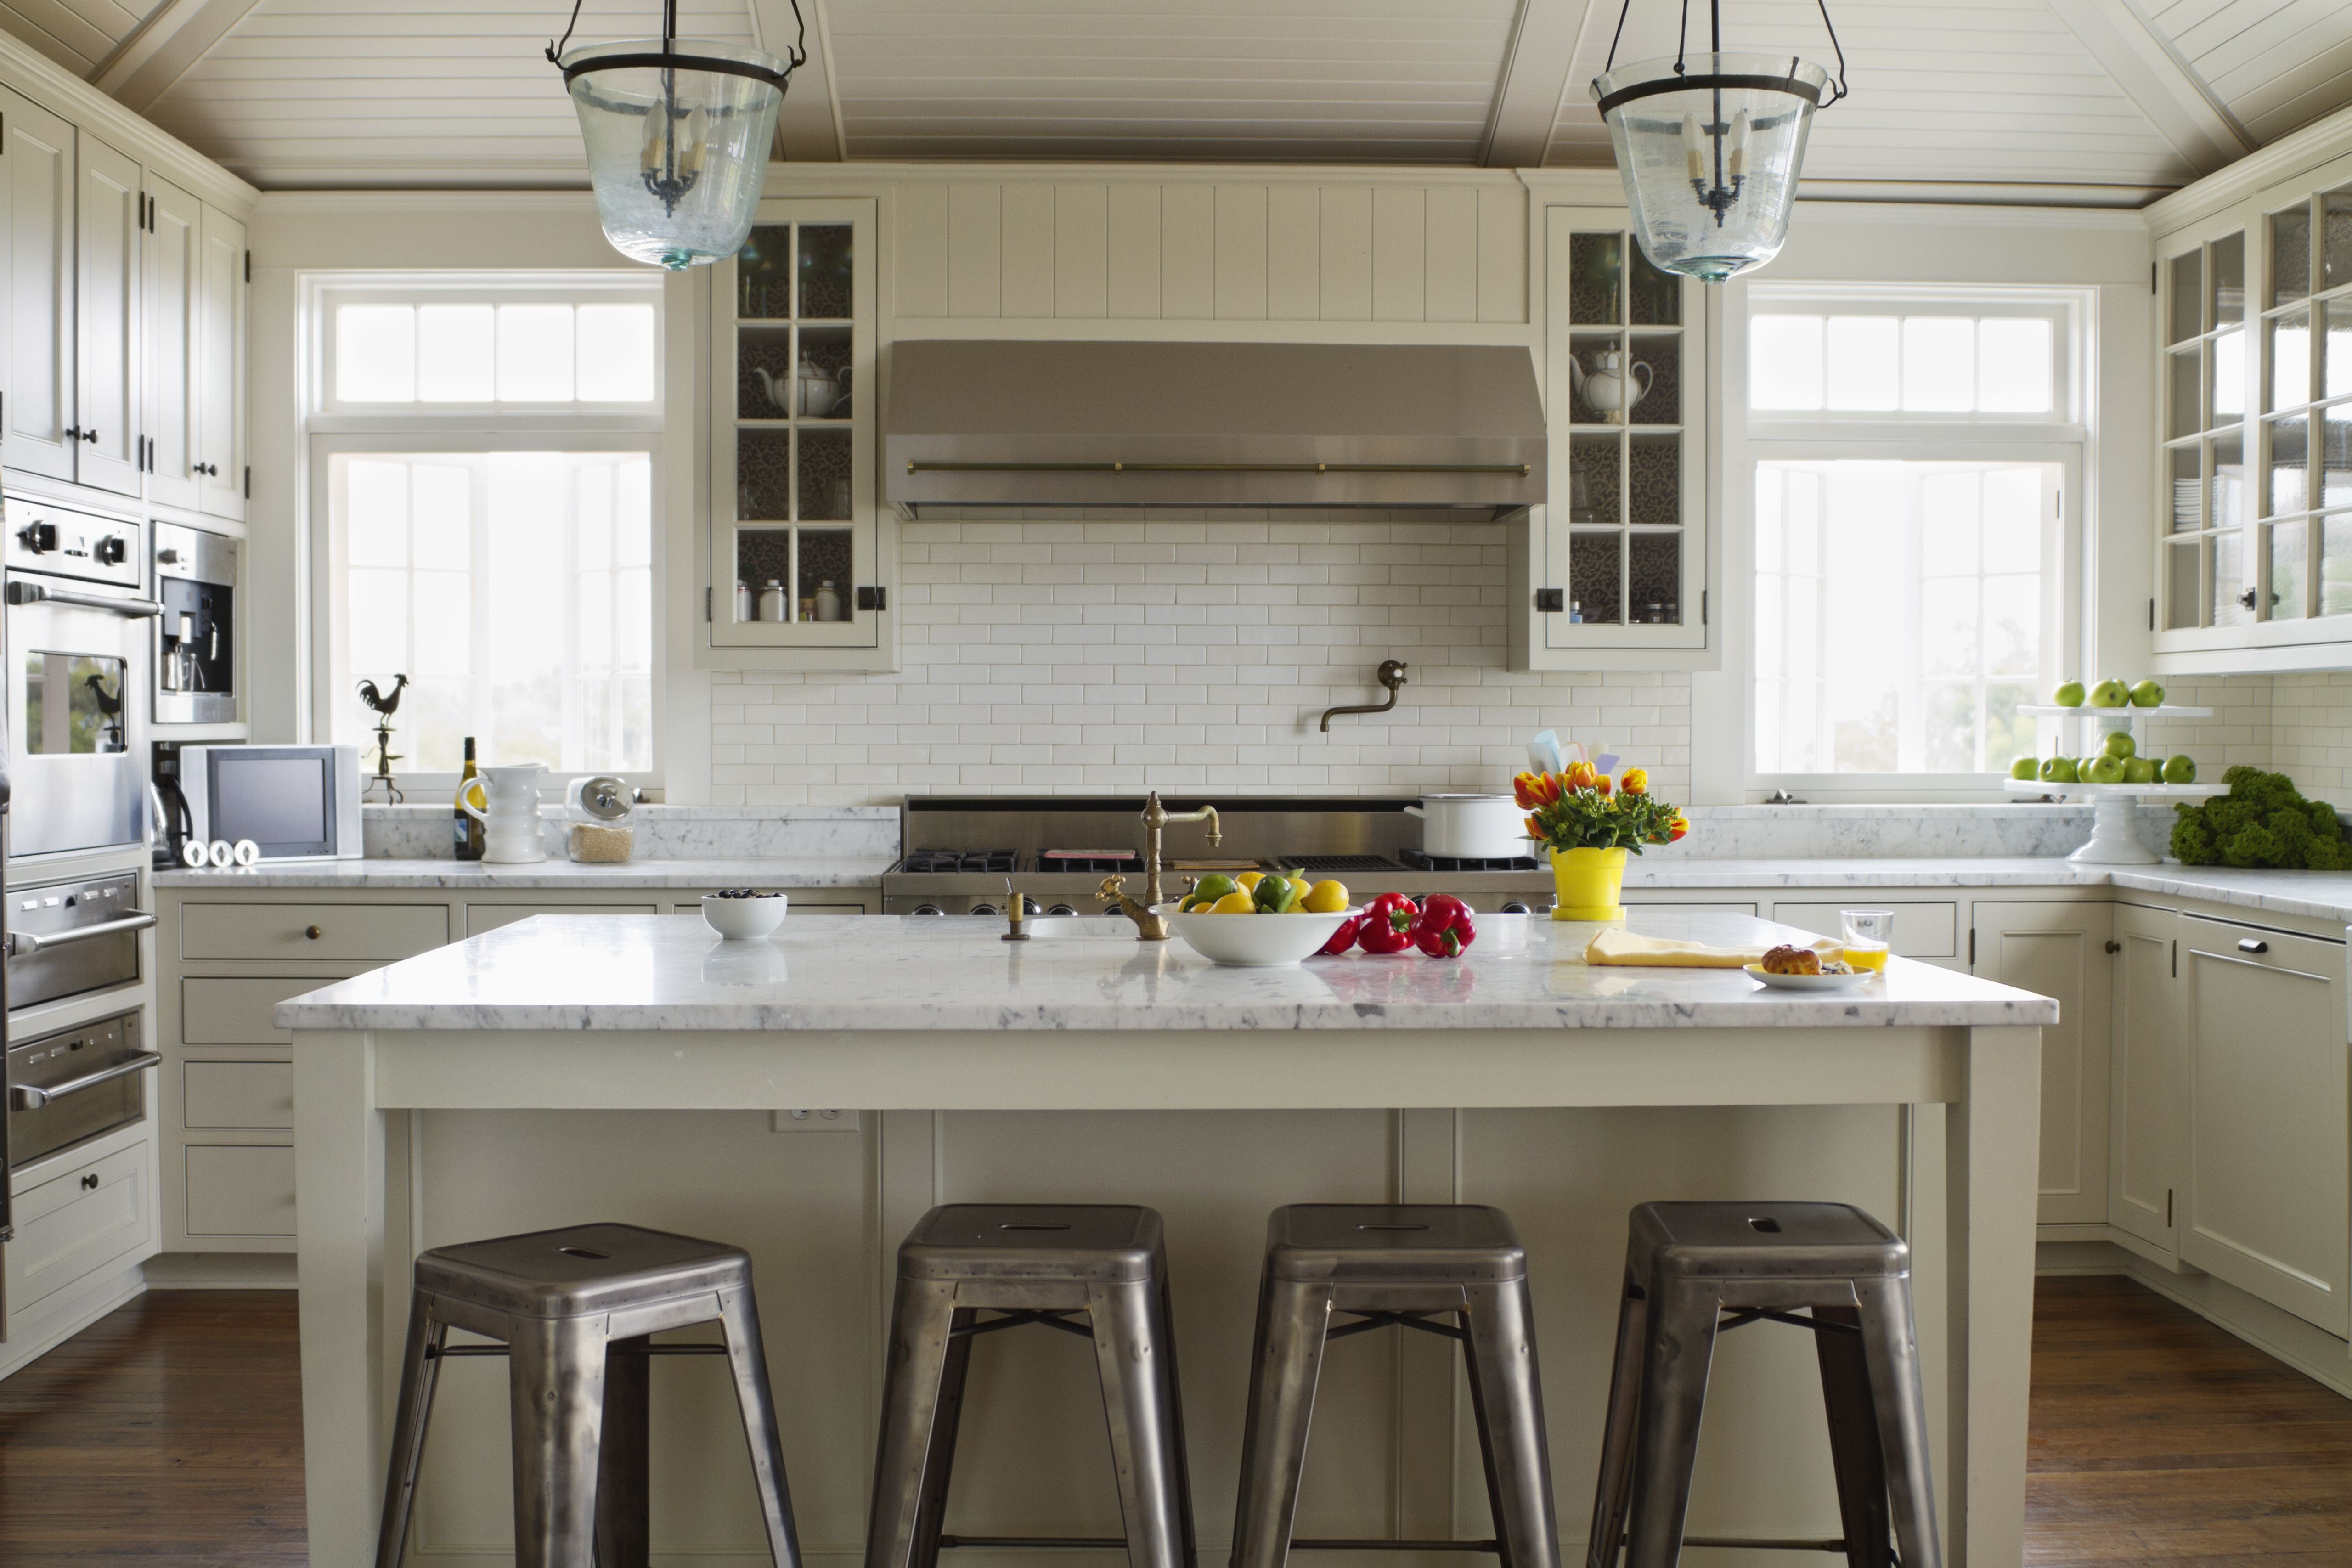 Design A Kitchen Electrical Wiring Plan Multiple Room Lights One Circuit